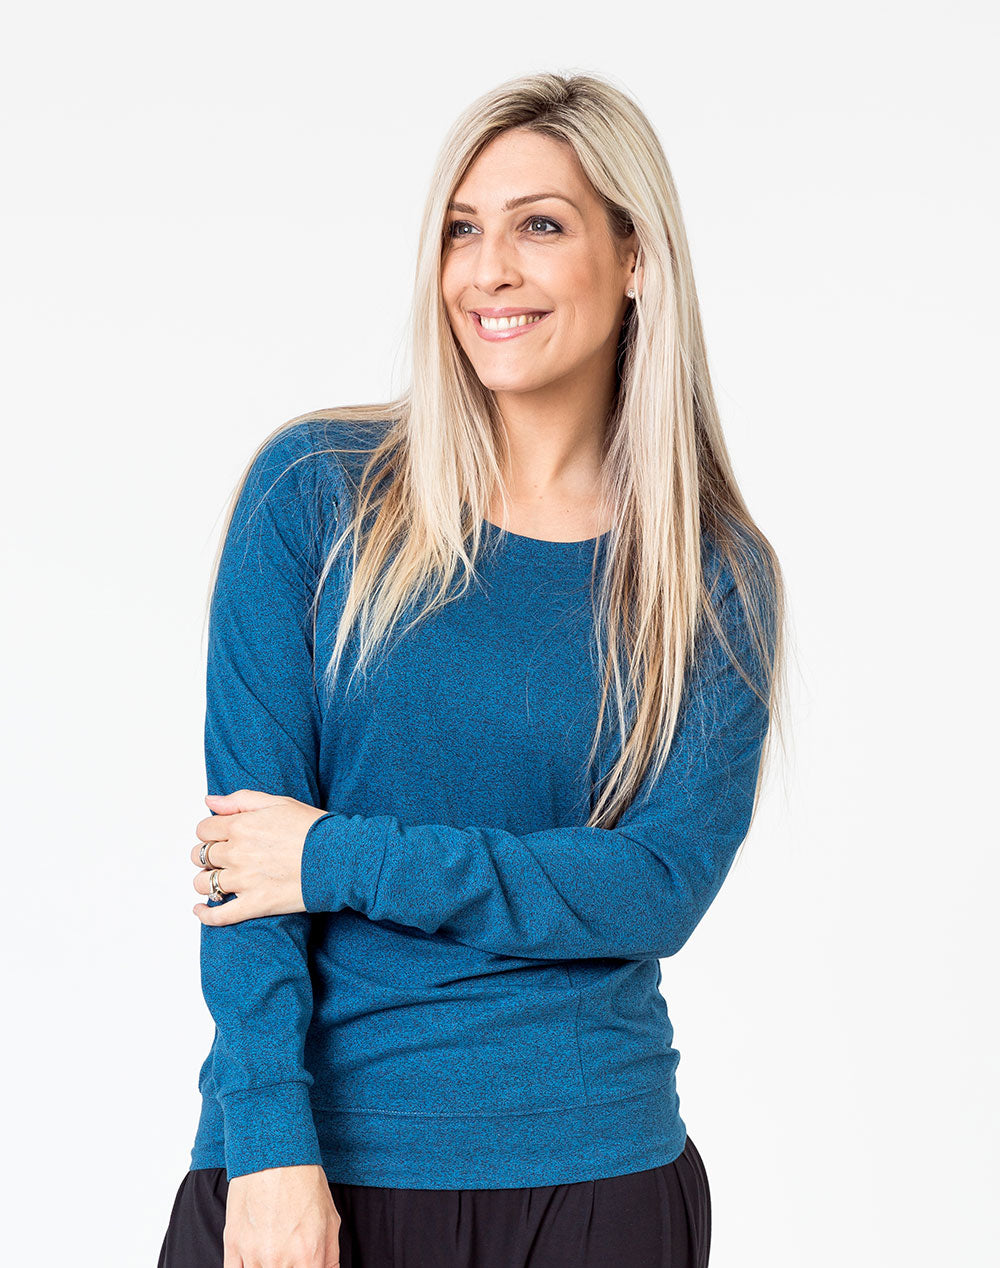 active mum wearing a navy maternity top with long sleeves and invisible zips for breastfeeding